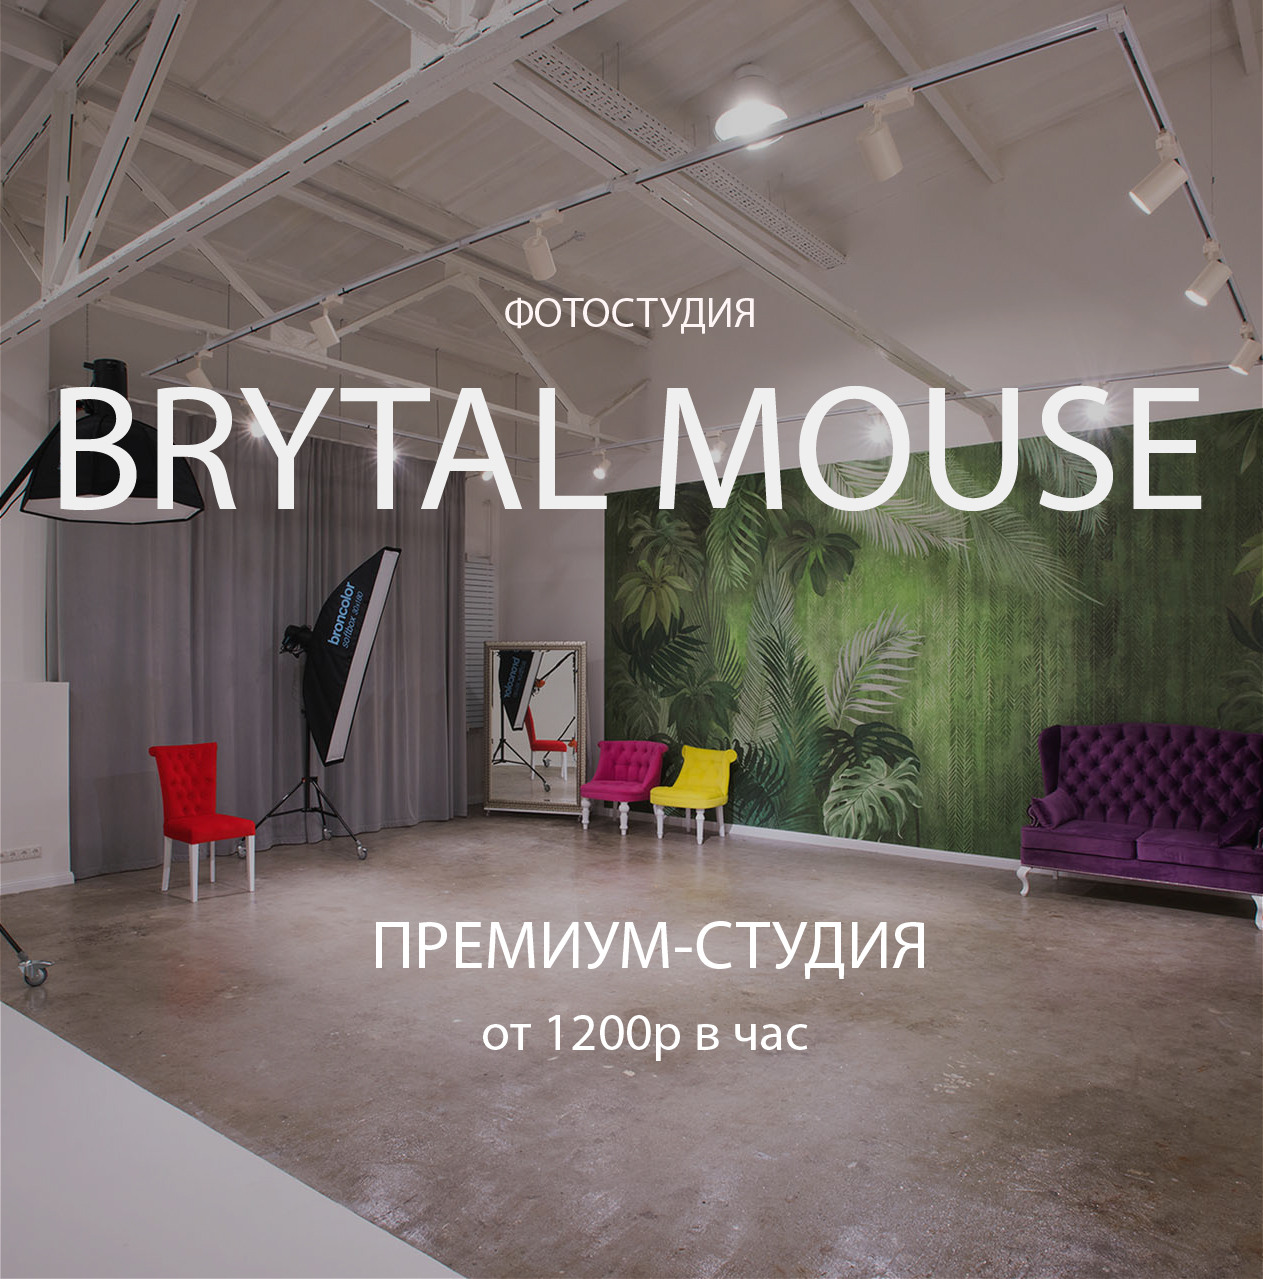 Brytal Mouse